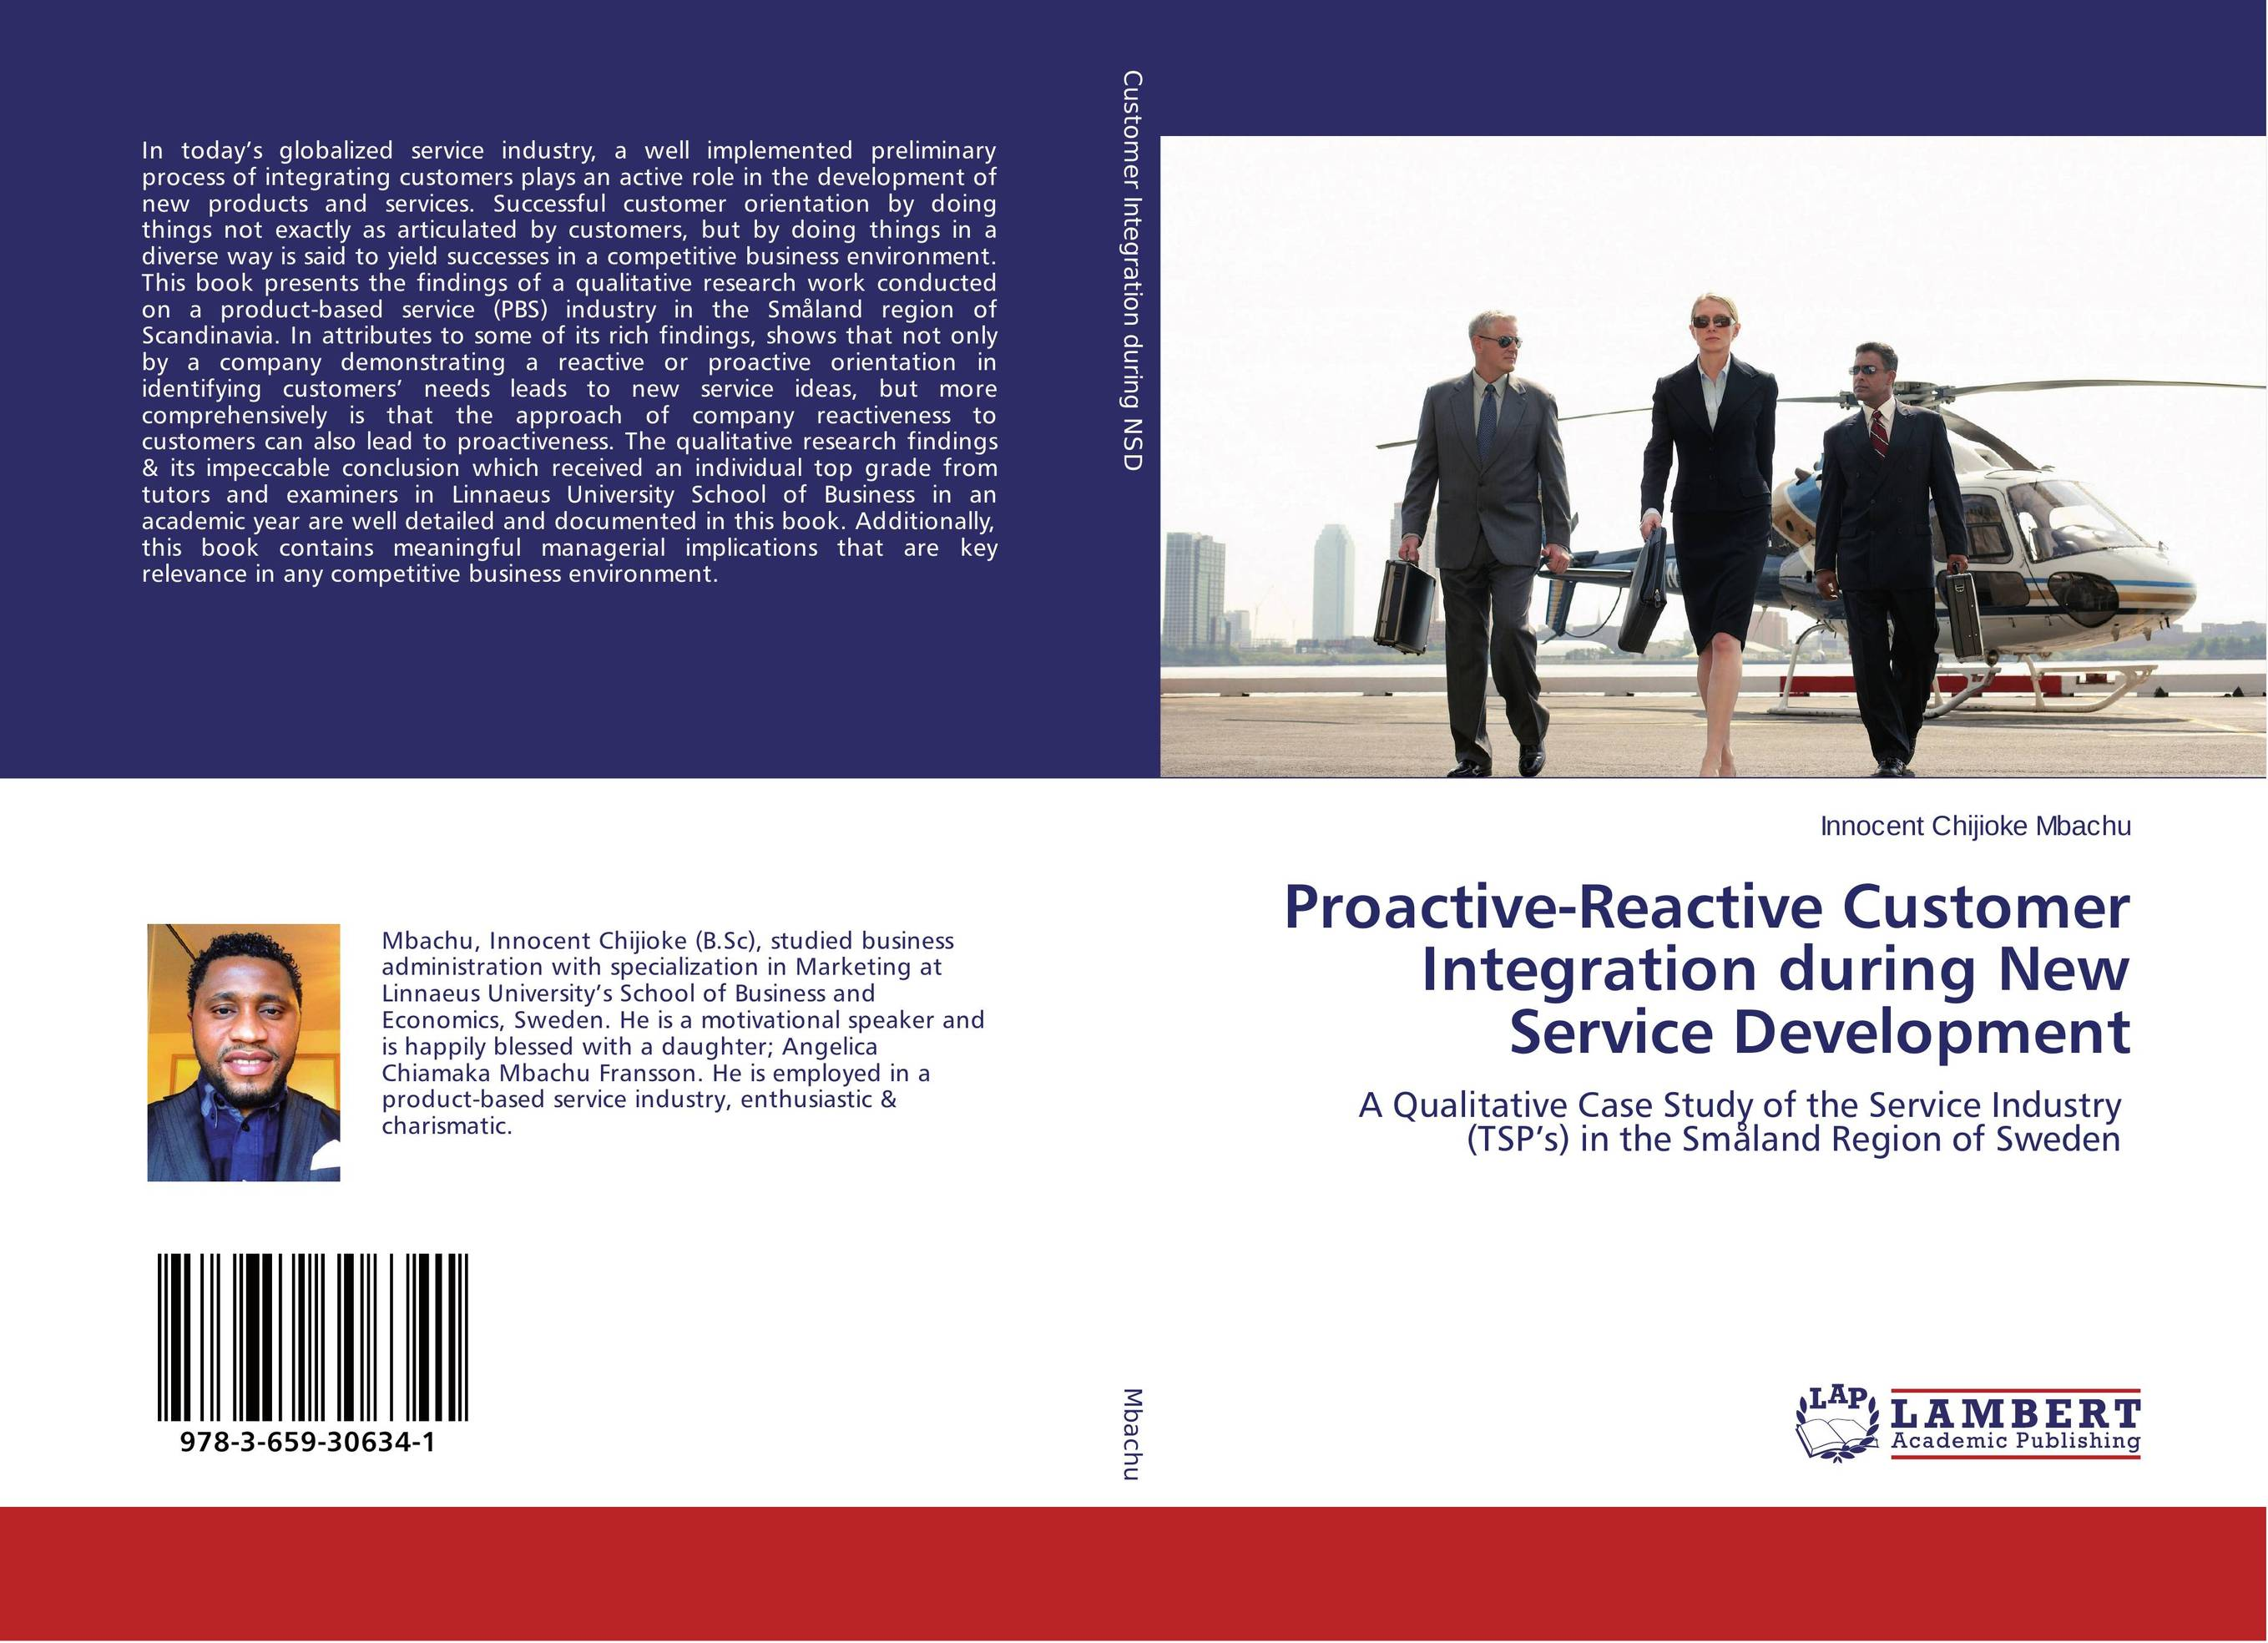 Proactive-Reactive Customer Integration during New Service Development